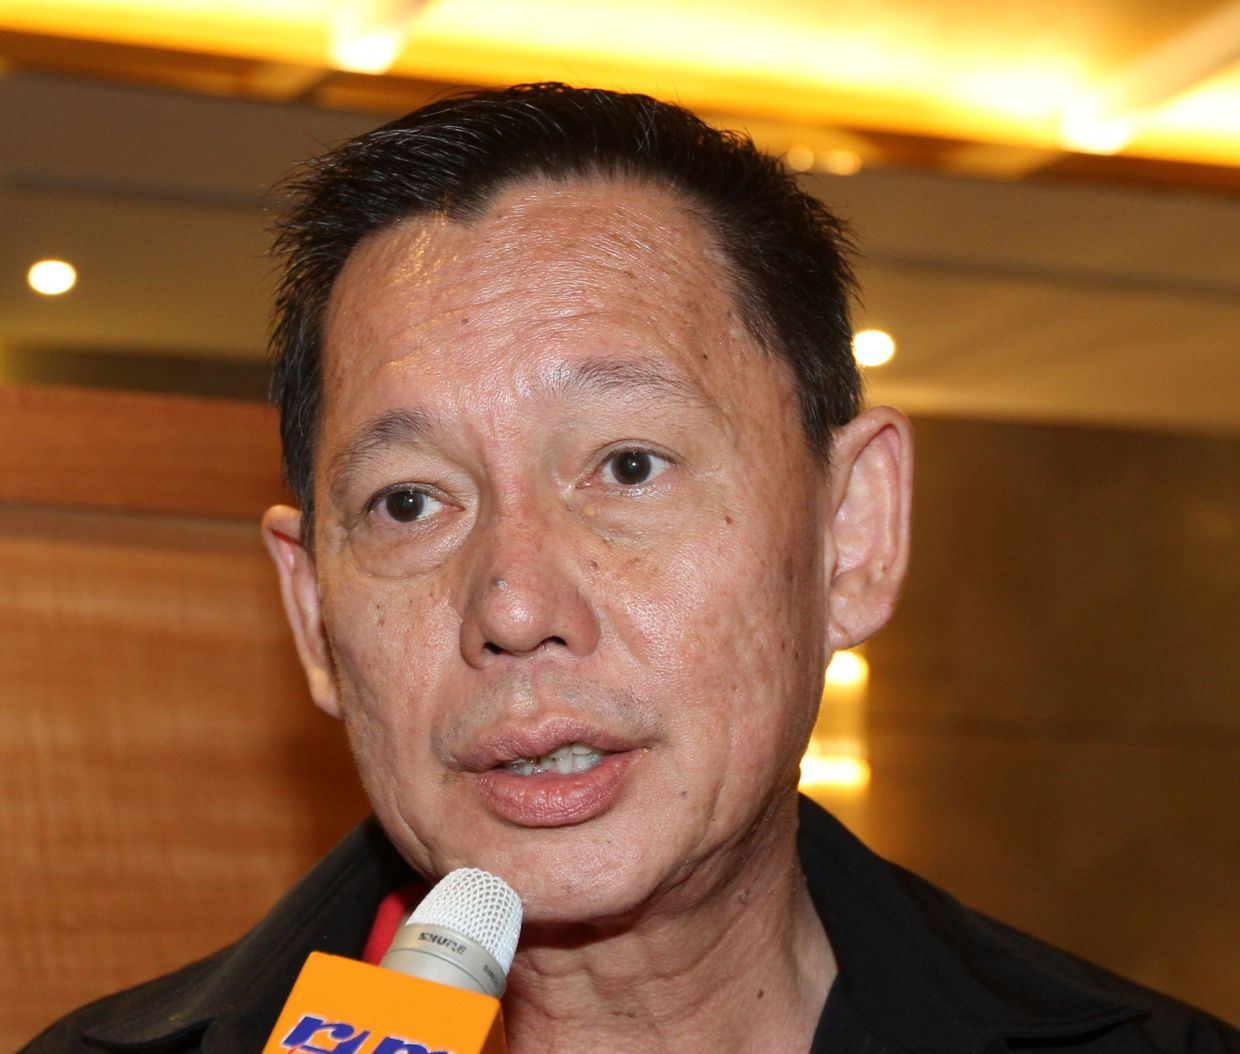 Sunway Malls and Theme Parks chief executive officer HC Chan